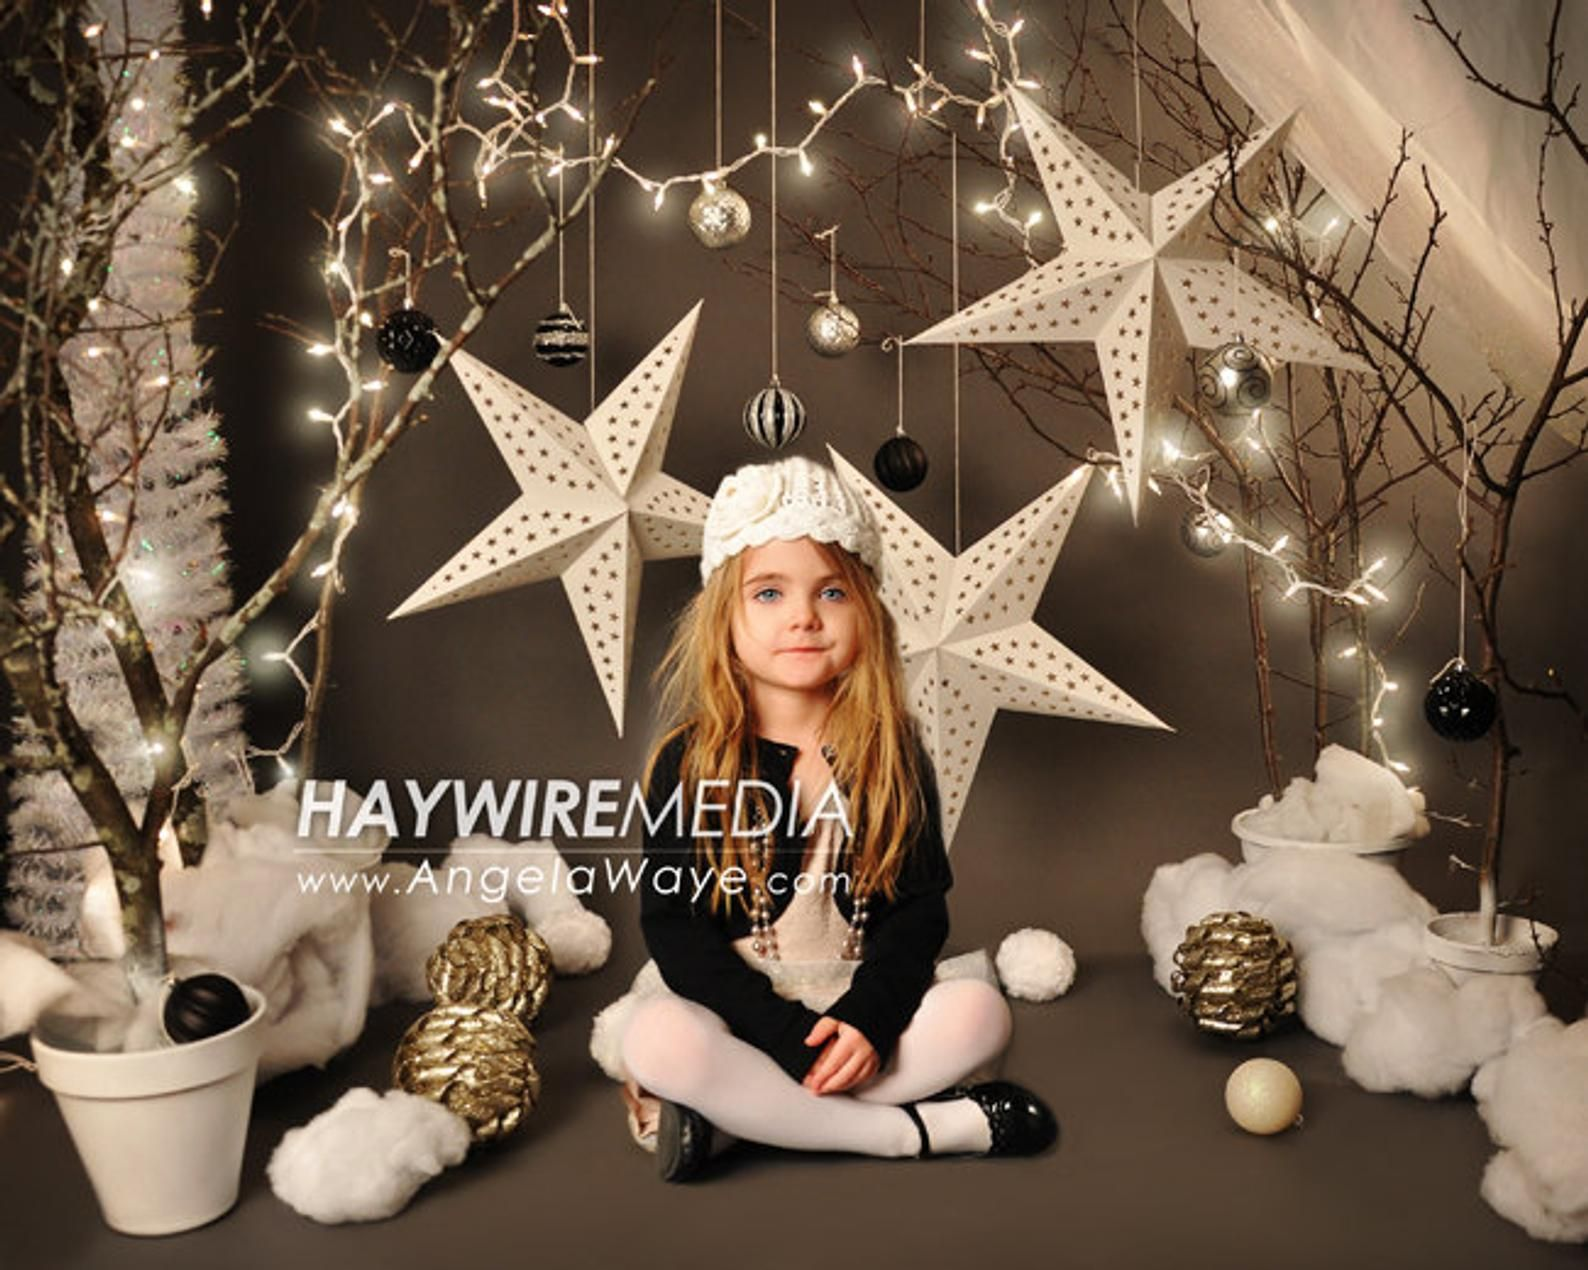 Baby, Toddler, Child, Winter Tree Star Photography Digital Backdrop Prop for Photographers #backdropsforphotographs